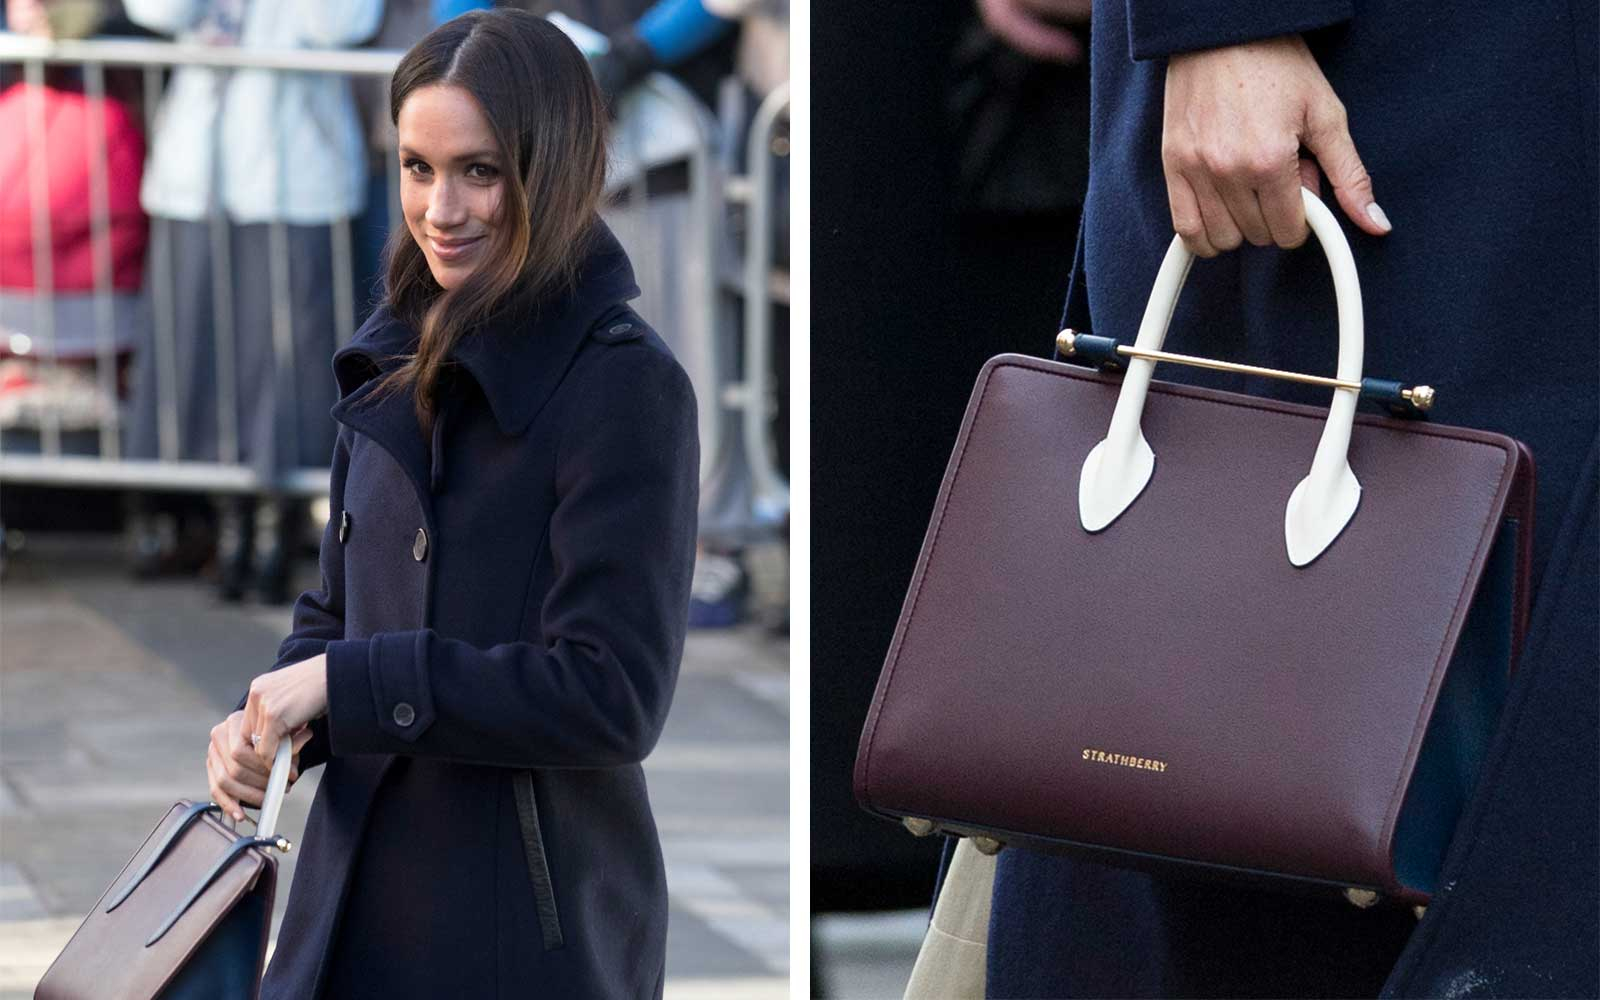 Meghan Markle carries Strathberry Handbag